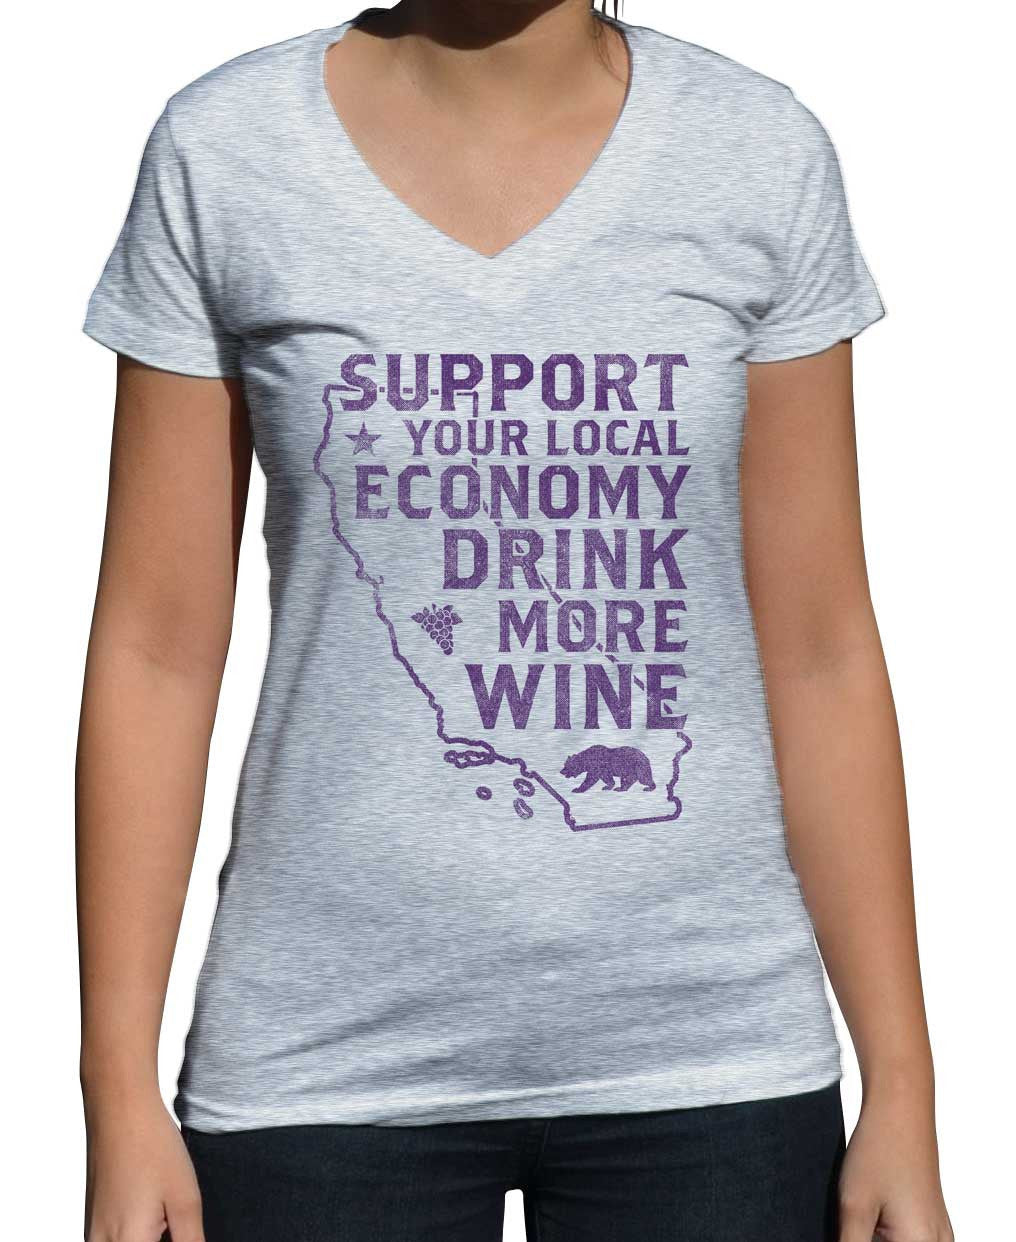 Women's Support Your Local Economy Drink More Wine T-shirt Vneck T-Shirt California T-shirt